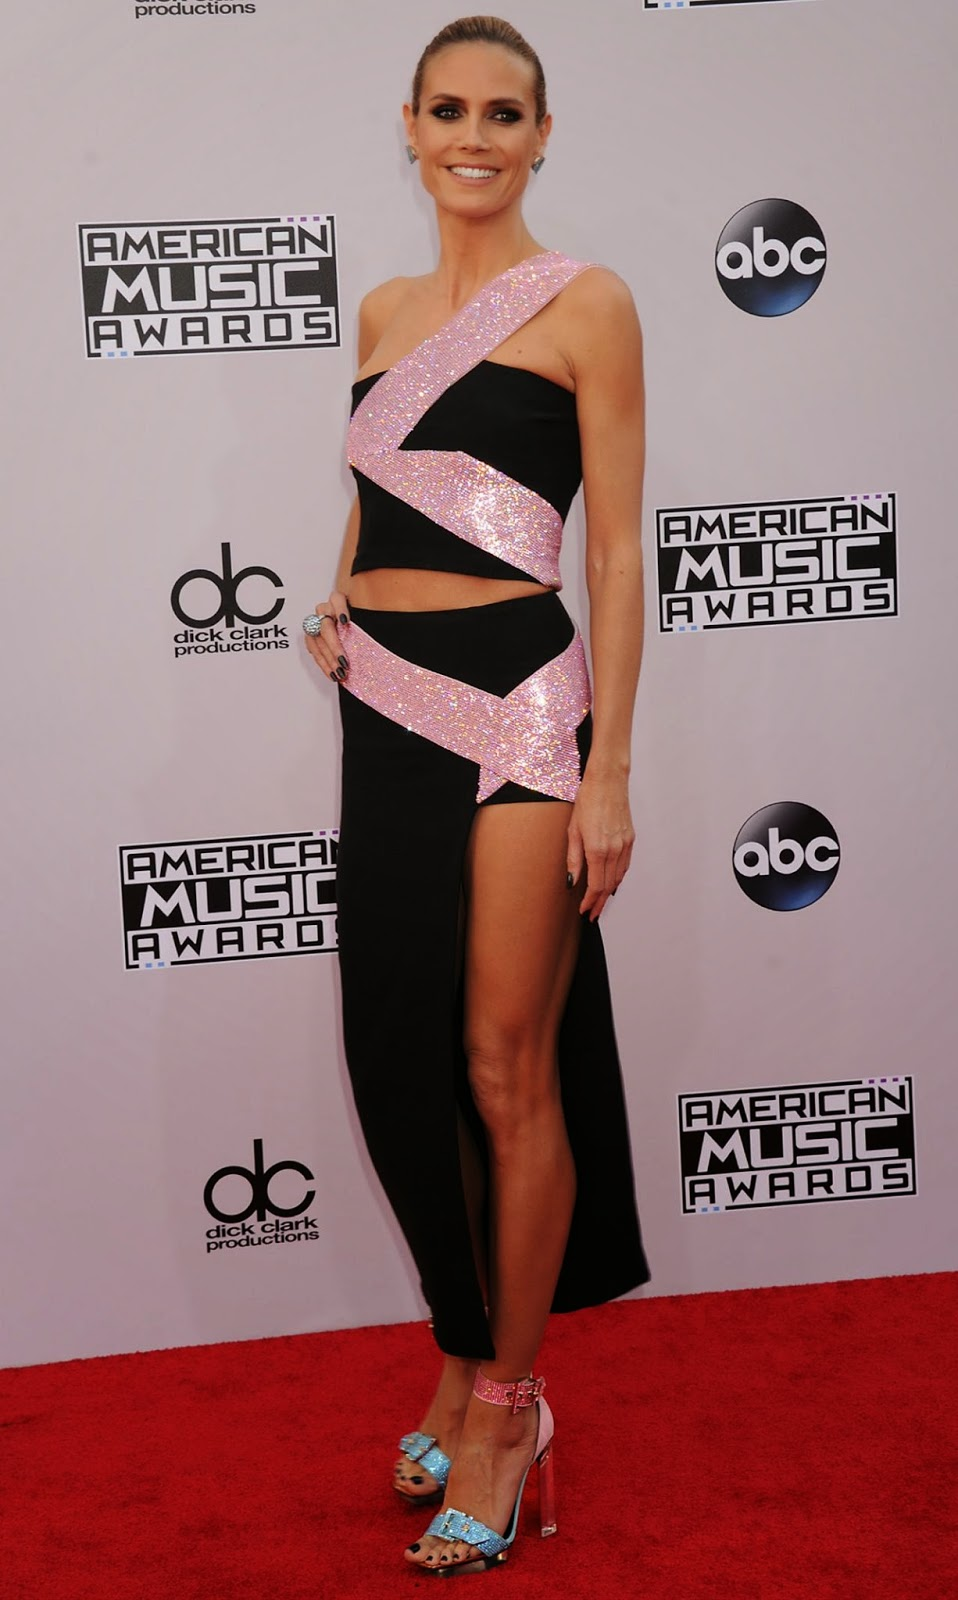 Heidi Klum shows off skin in a Versace dress at the 2014 American Music Awards